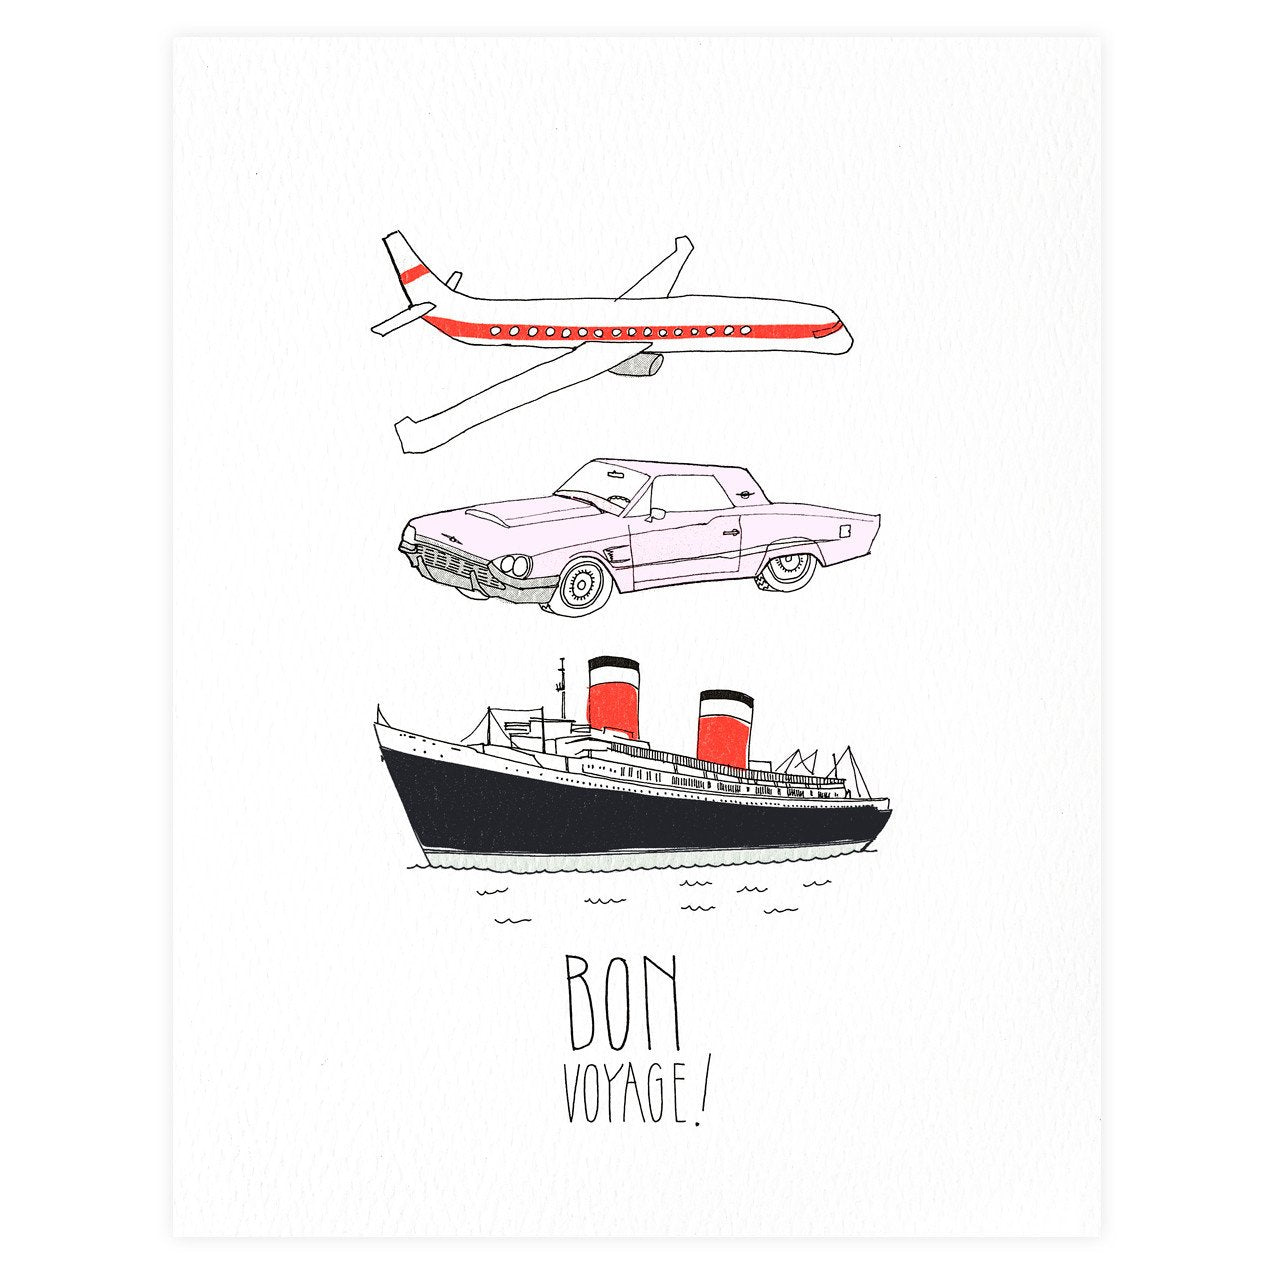 Hartland brooklyn bon voyage greeting card greerchicago hartland brooklyn bon voyage greeting card greer chicago online stationery shop kristyandbryce Image collections